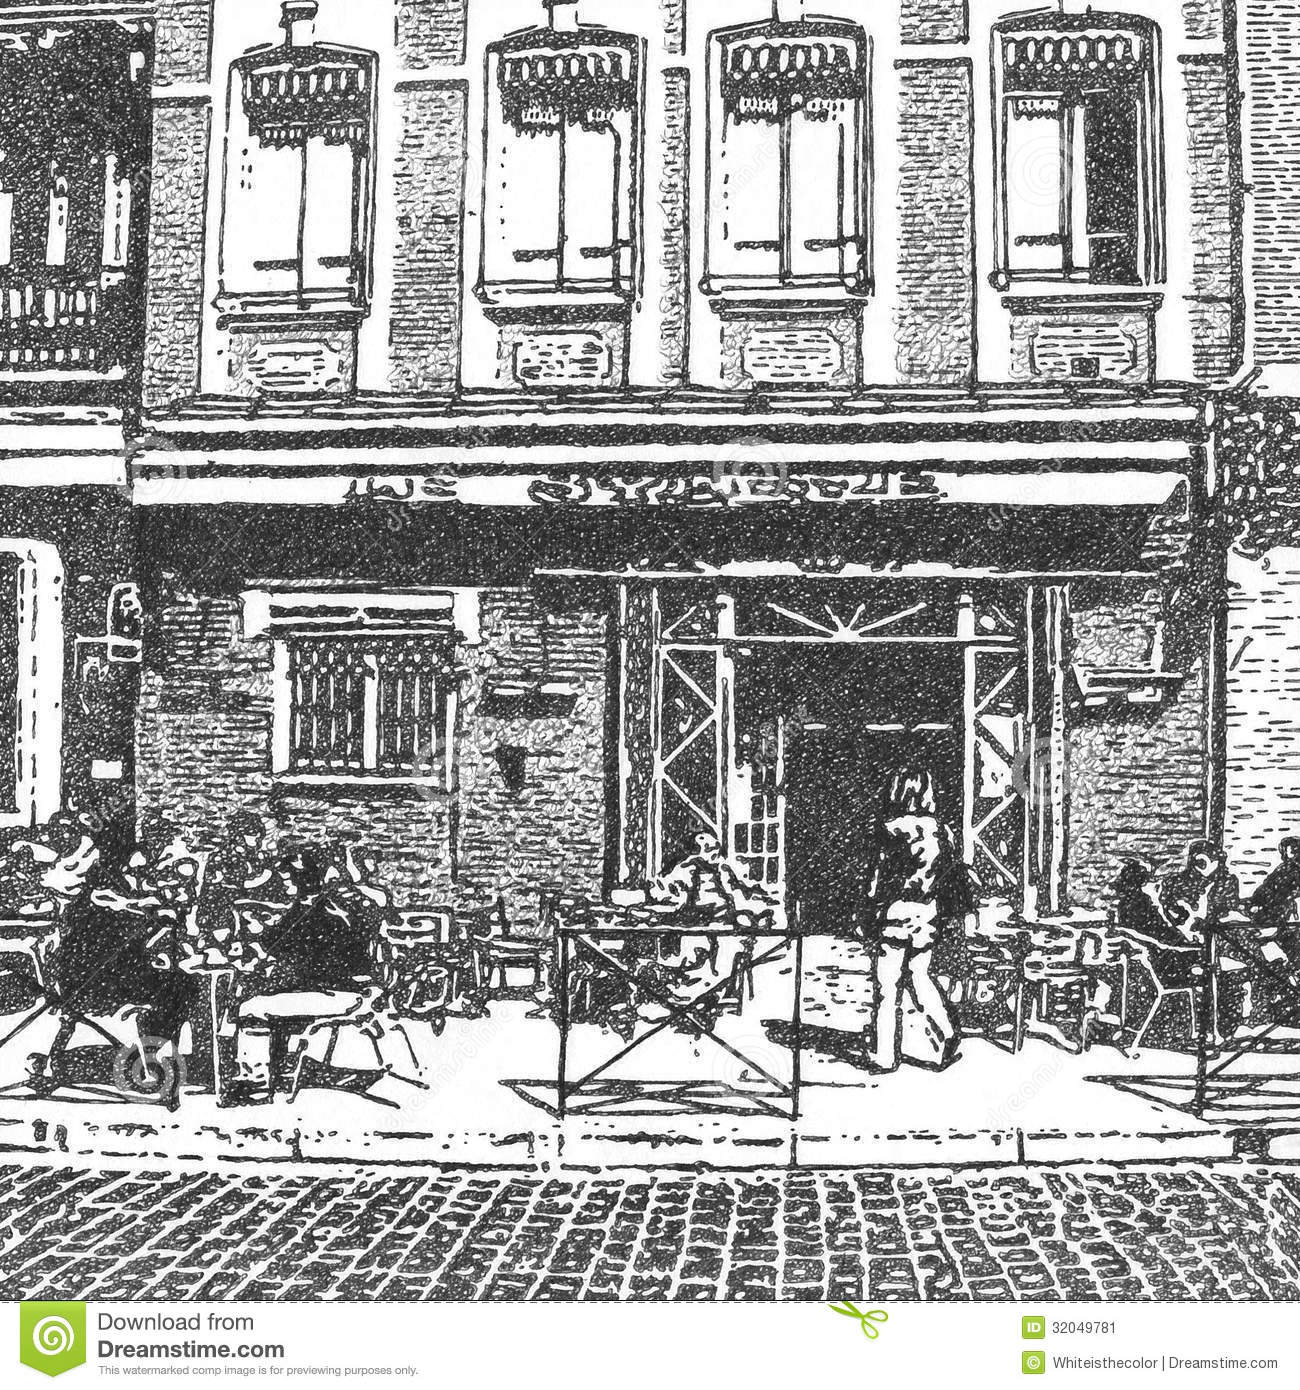 Artistic Drawing Of A French Street Cafe Stock Image - Image: 32049781